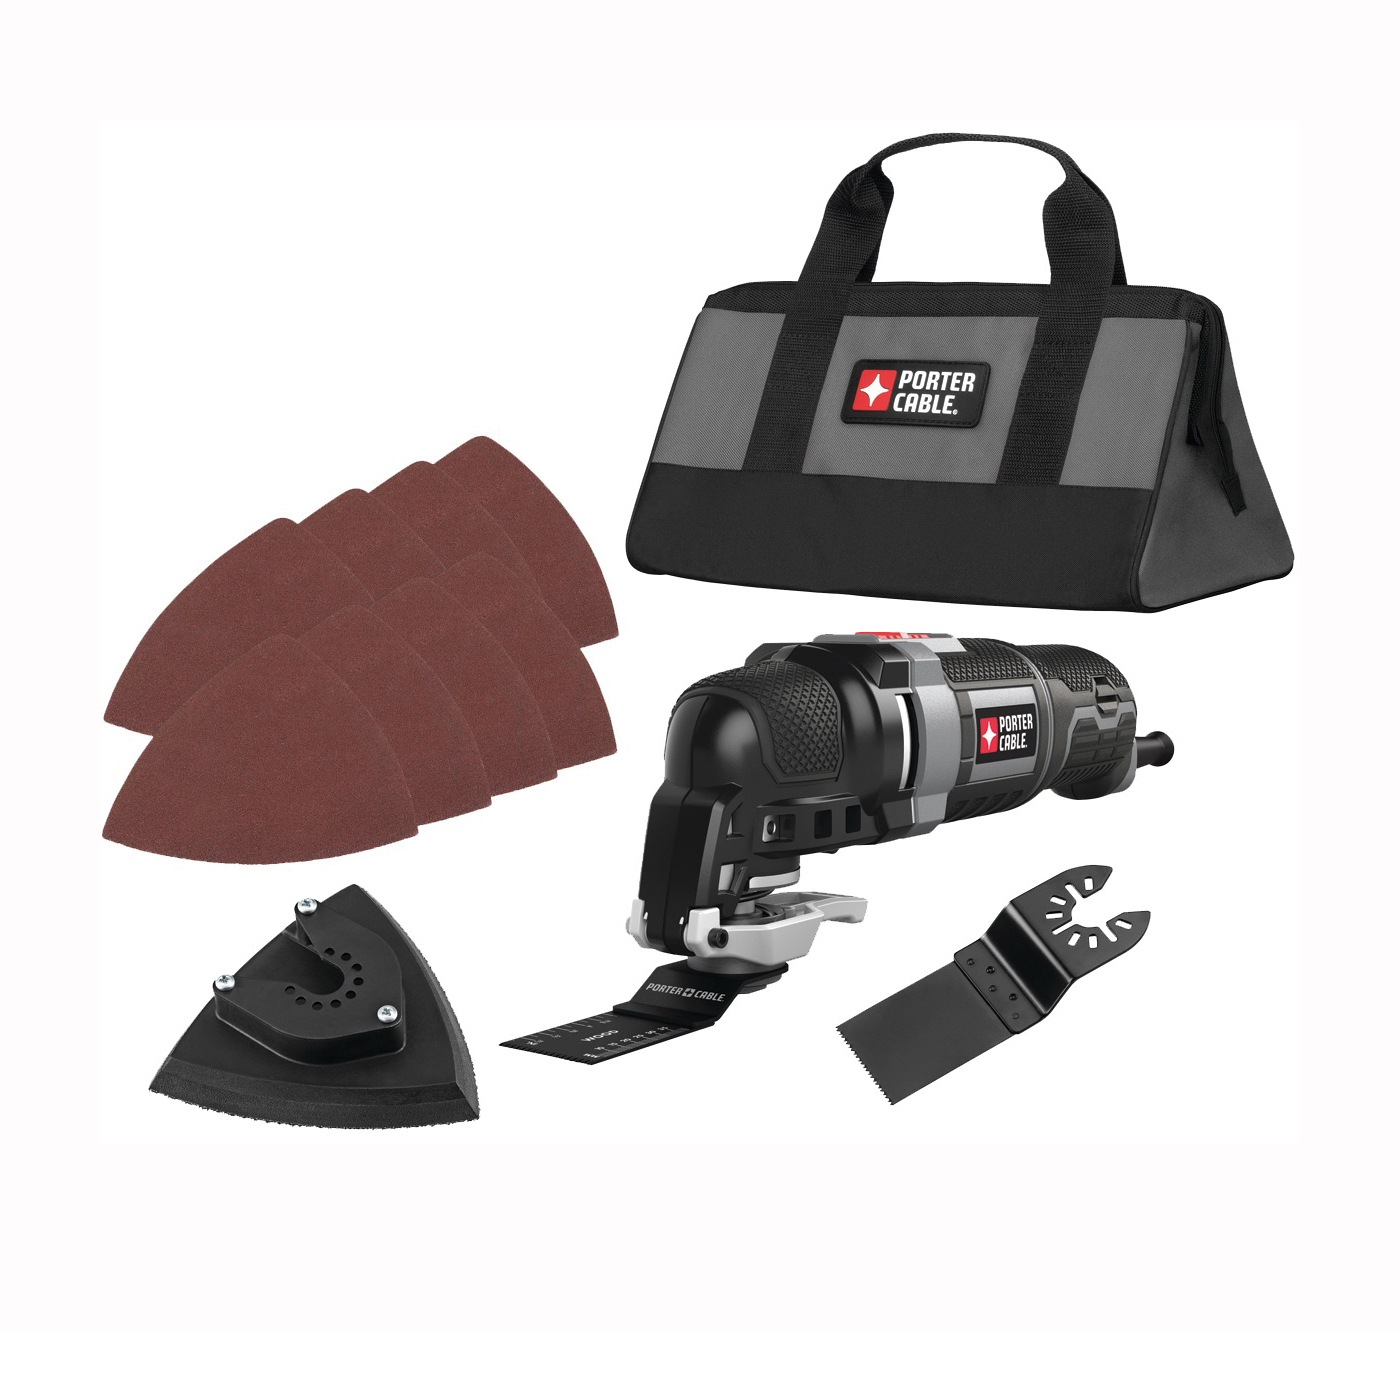 Picture of PORTER-CABLE PCE606K Oscillating Multi-Tool Kit, 3 A, 10,000 to 22,000 opm OPM, 2.8 deg Oscillating